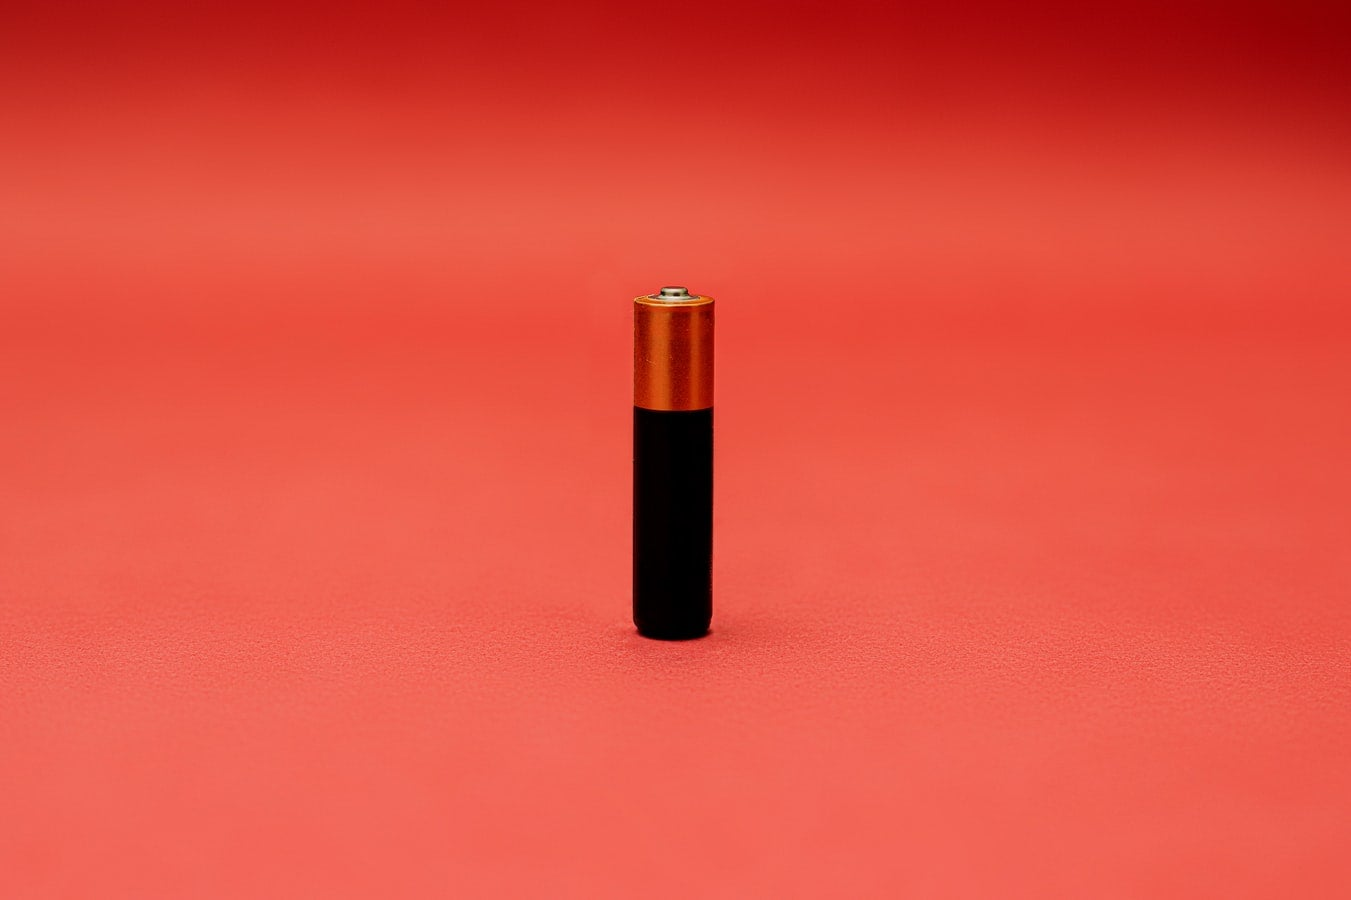 AAA battery on red background